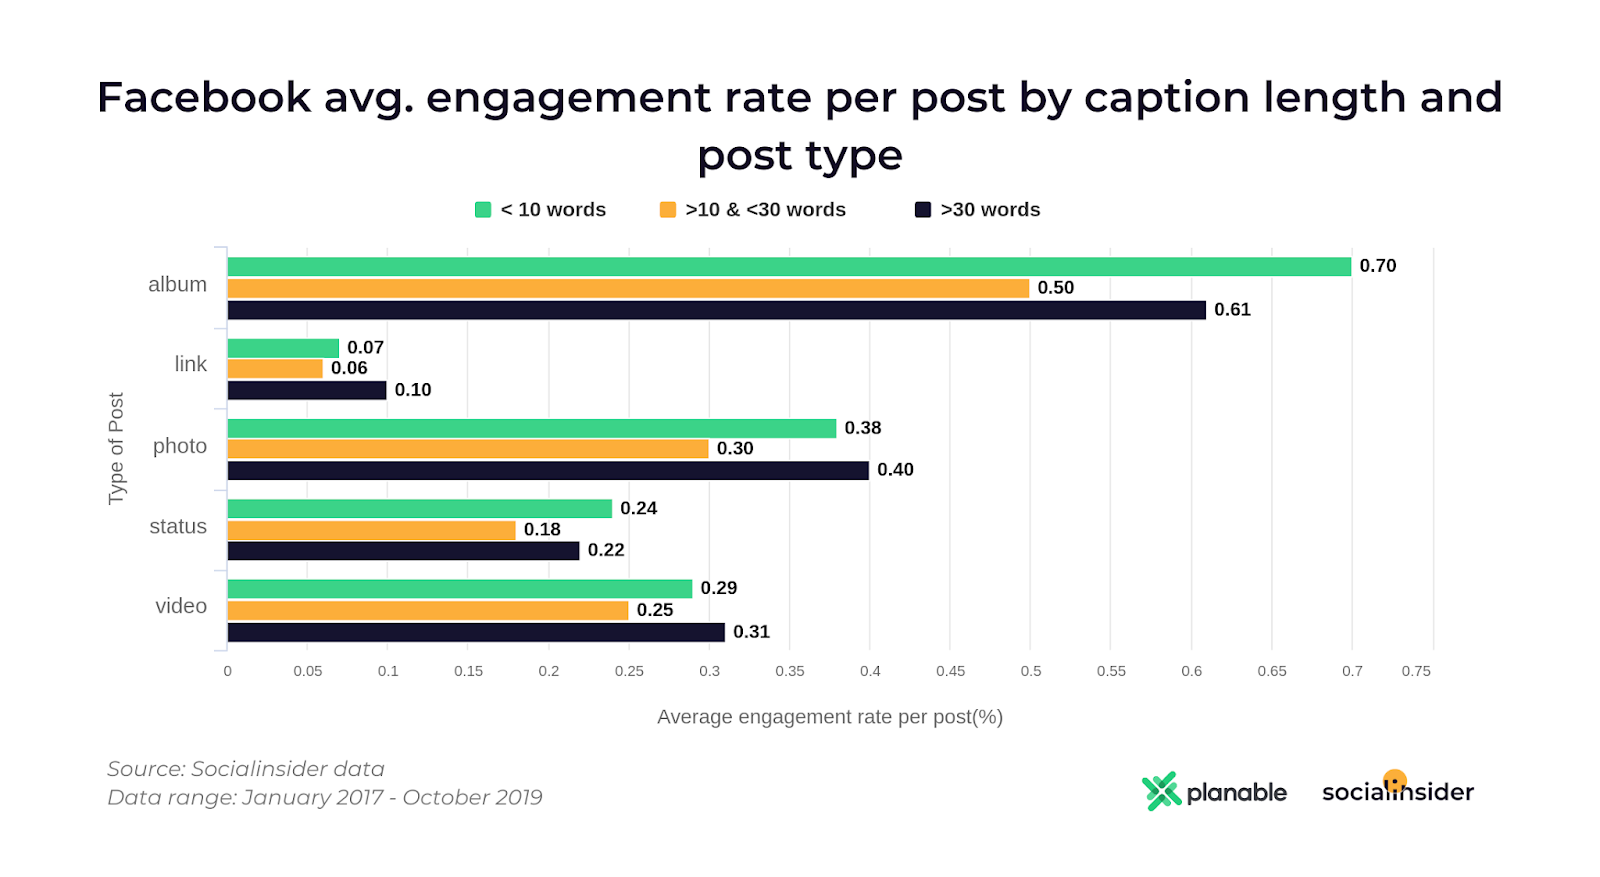 Facebook avg engagement caption length and post type